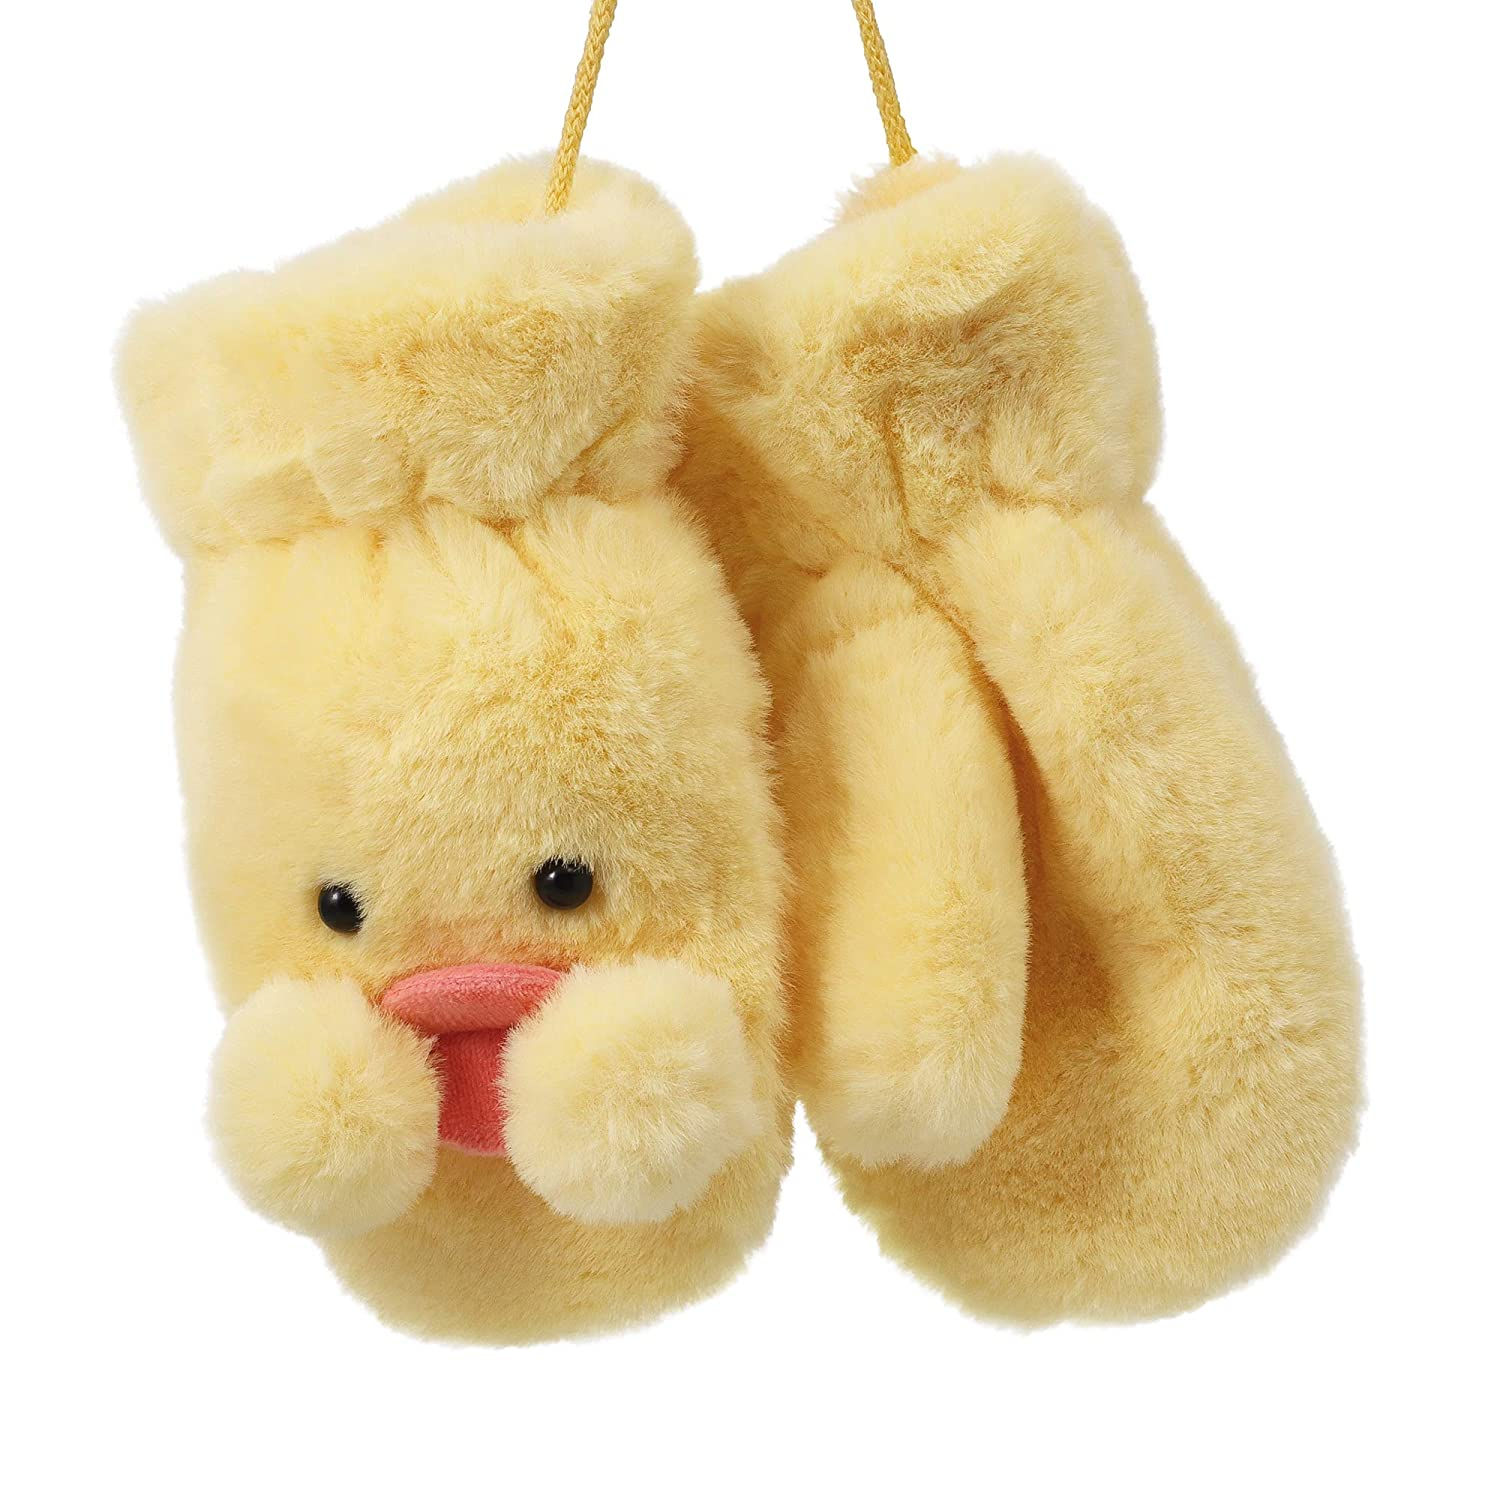 Flammi Kids Cold Wearther Mittens with String Fluffy Mittens Warm Duck Look